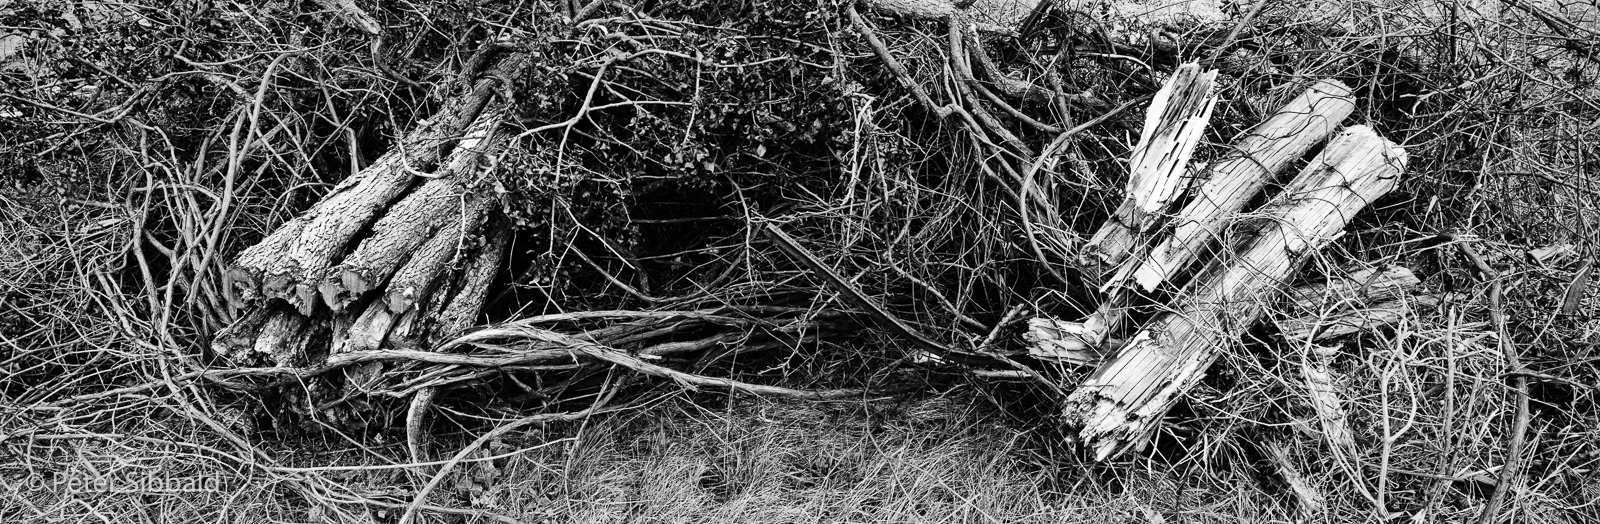 Art and Documentary Photography - Loading 023-circa-2007_spr_041_11-crushed_hedgerow-posts-copy.jpg